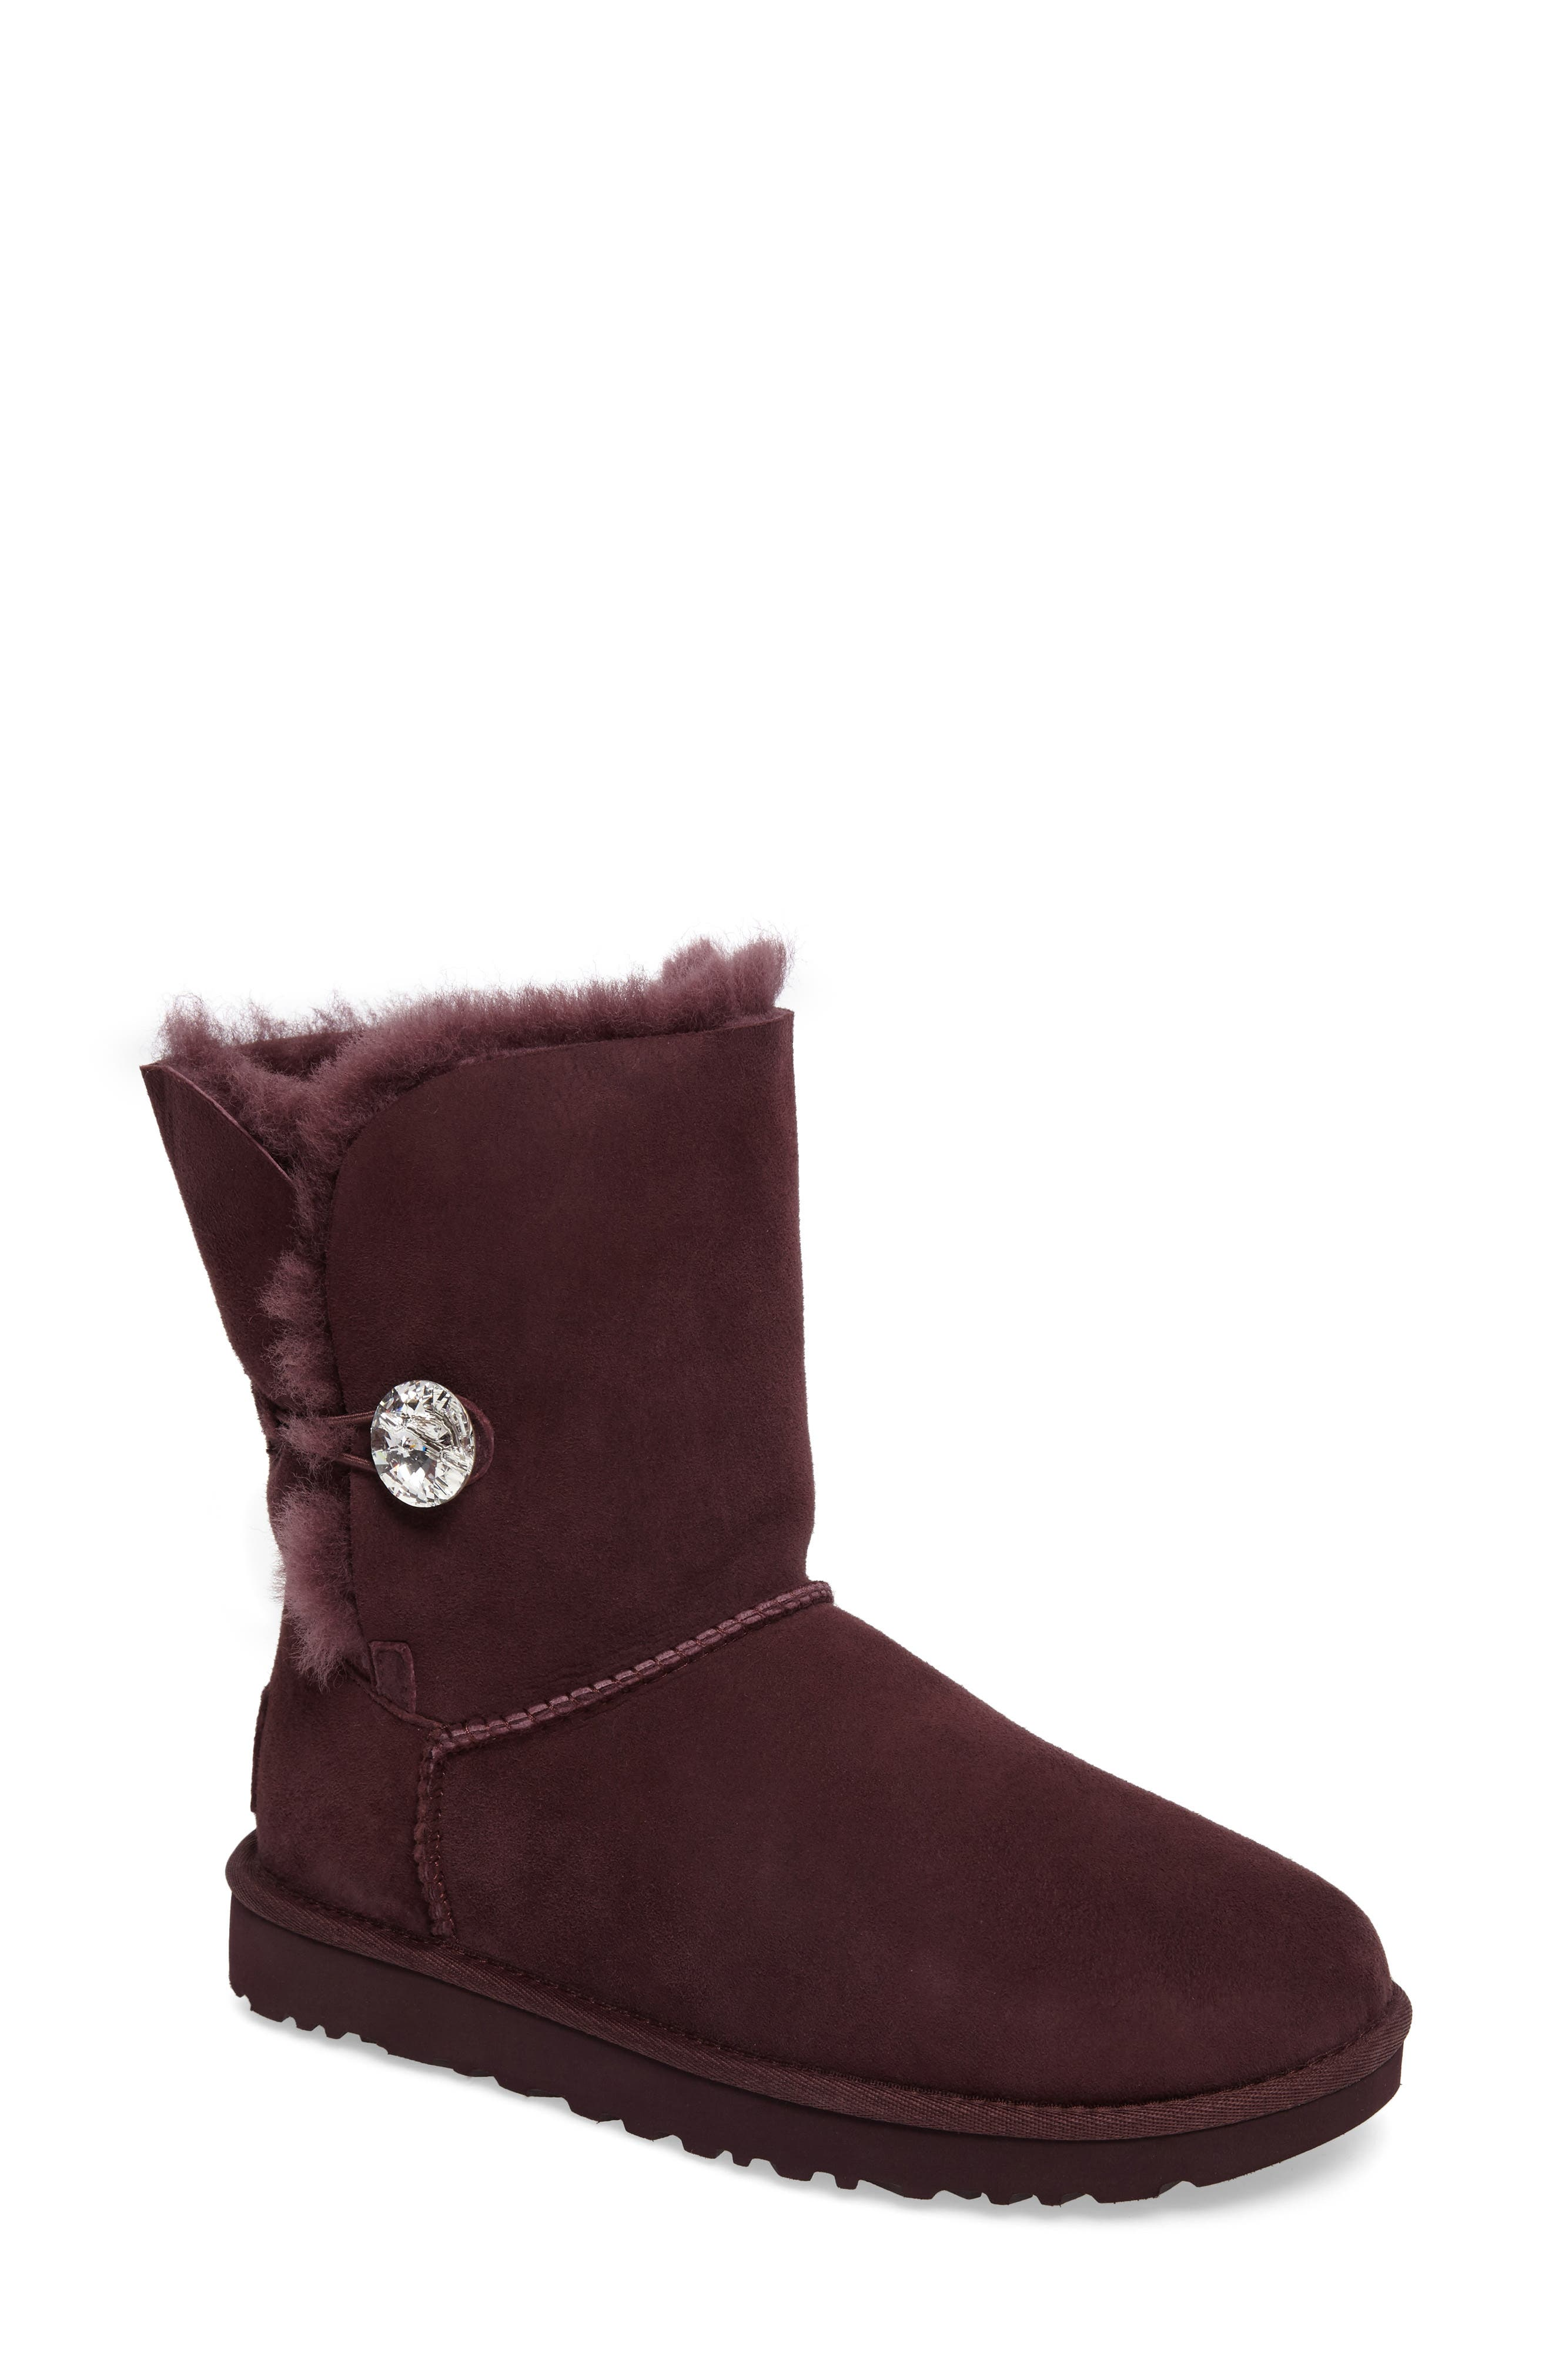 Alternate Image 1 Selected - UGG® Bailey Button Bling Genuine Shearling Boot (Women)